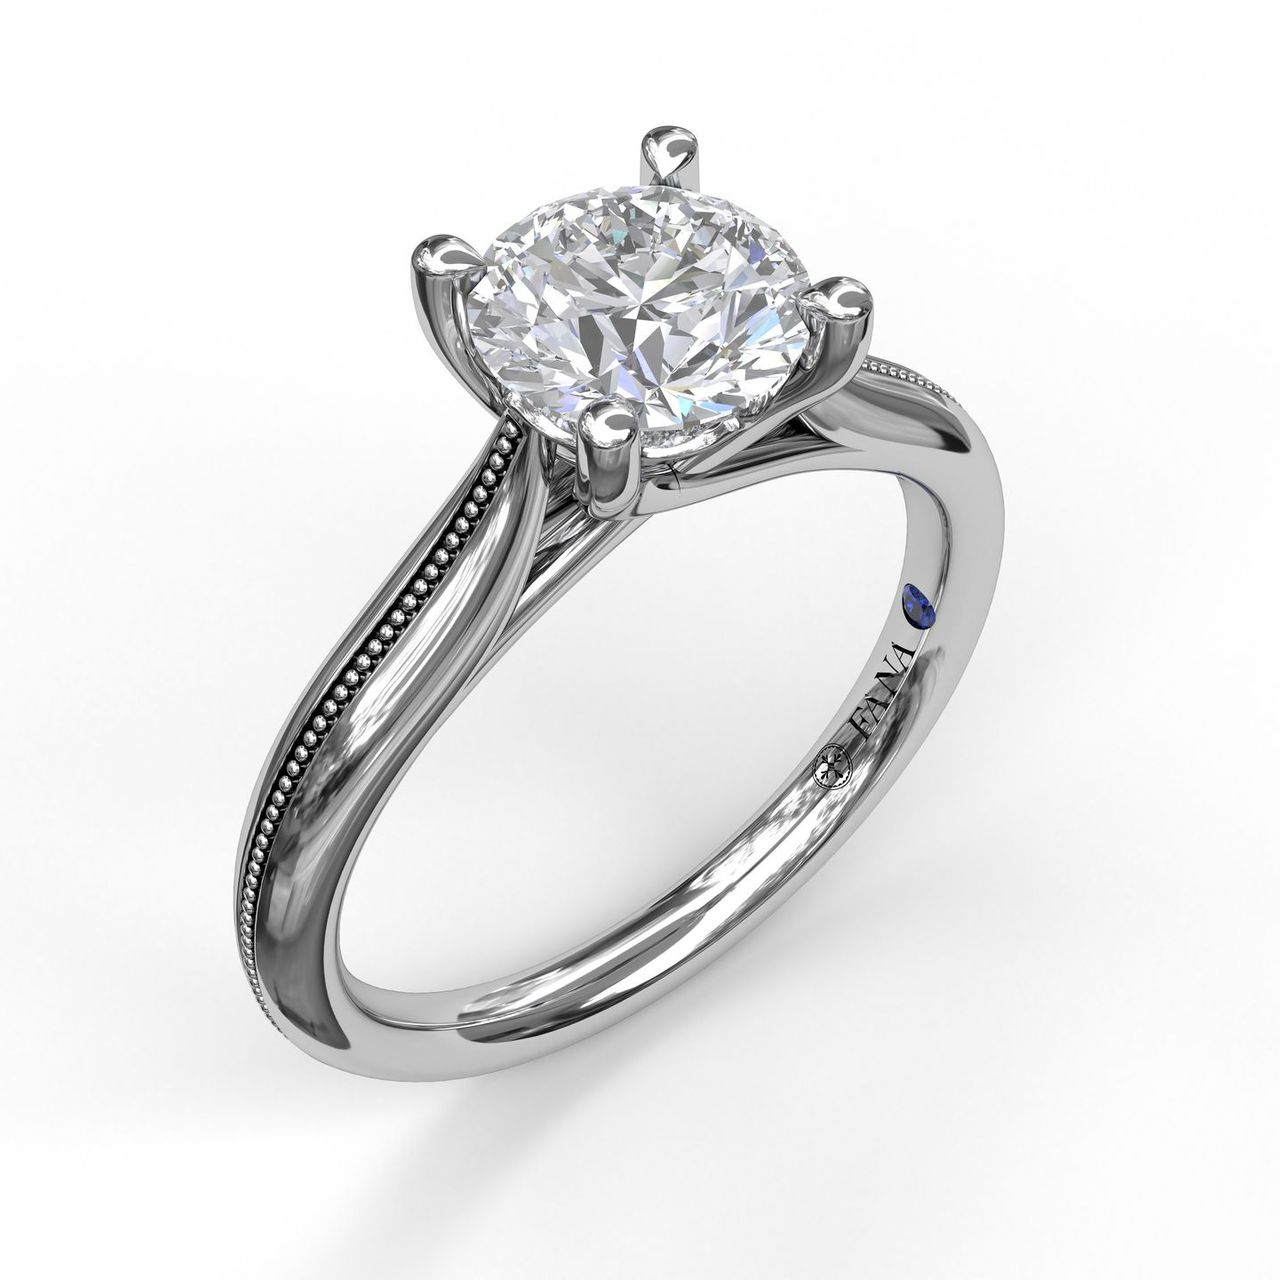 Round Cut Solitaire With Detailed Milgrain Band